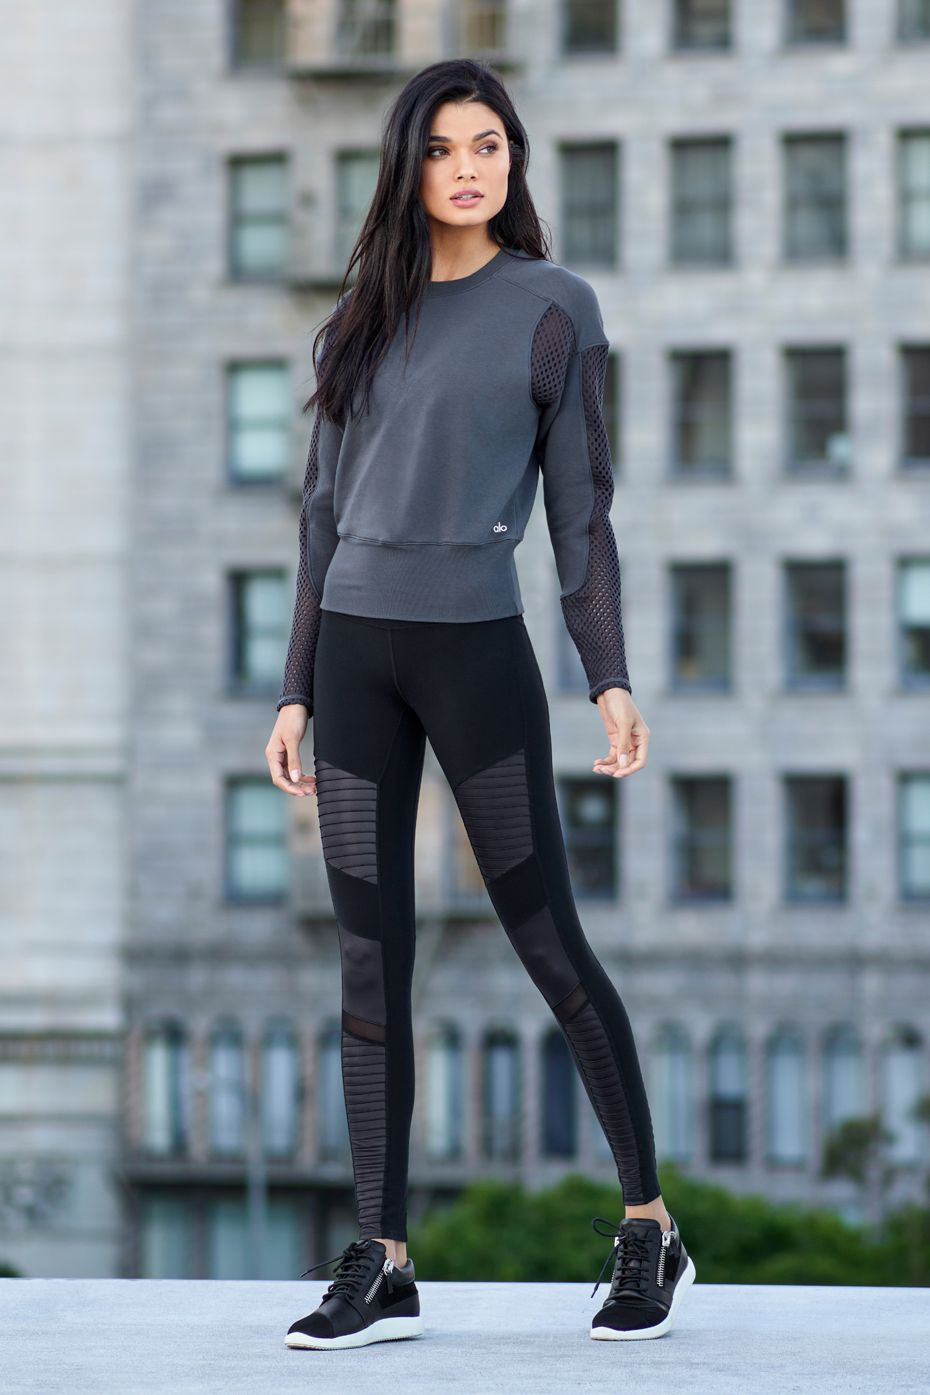 29ccf9a50e ALO YOGA || Formation Long Sleeve Top and High-Waist Moto Legging #aloyoga  #beagoddess